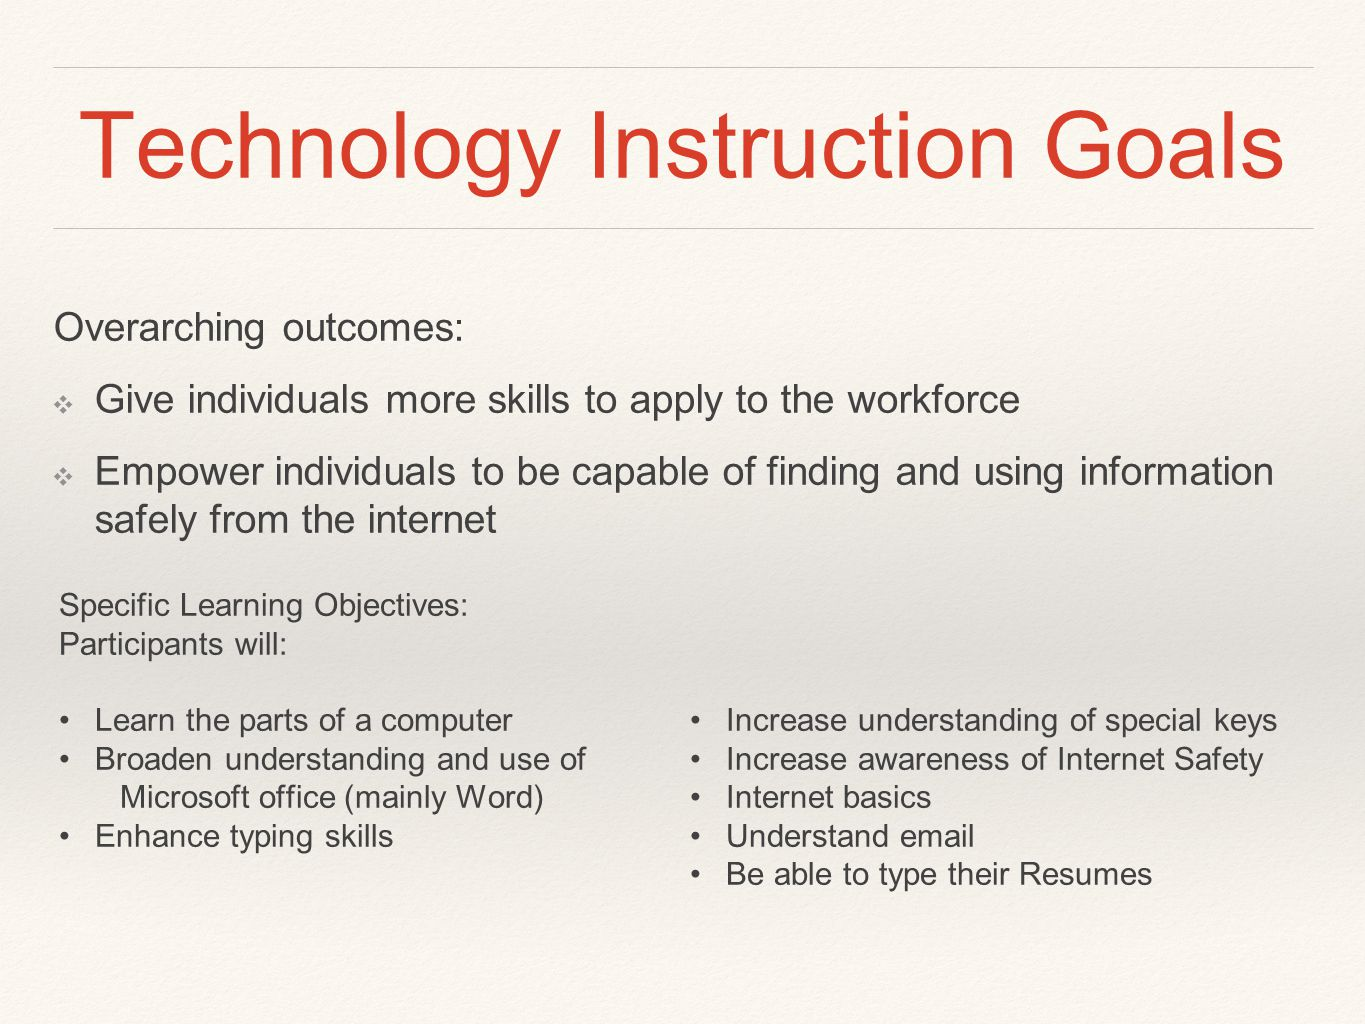 Technology Instruction Goals Overarching outcomes: ❖ Give individuals more skills to apply to the workforce ❖ Empower individuals to be capable of finding and using information safely from the internet Specific Learning Objectives: Participants will: Learn the parts of a computer Broaden understanding and use of Microsoft office (mainly Word) Enhance typing skills Increase understanding of special keys Increase awareness of Internet Safety Internet basics Understand email Be able to type their Resumes